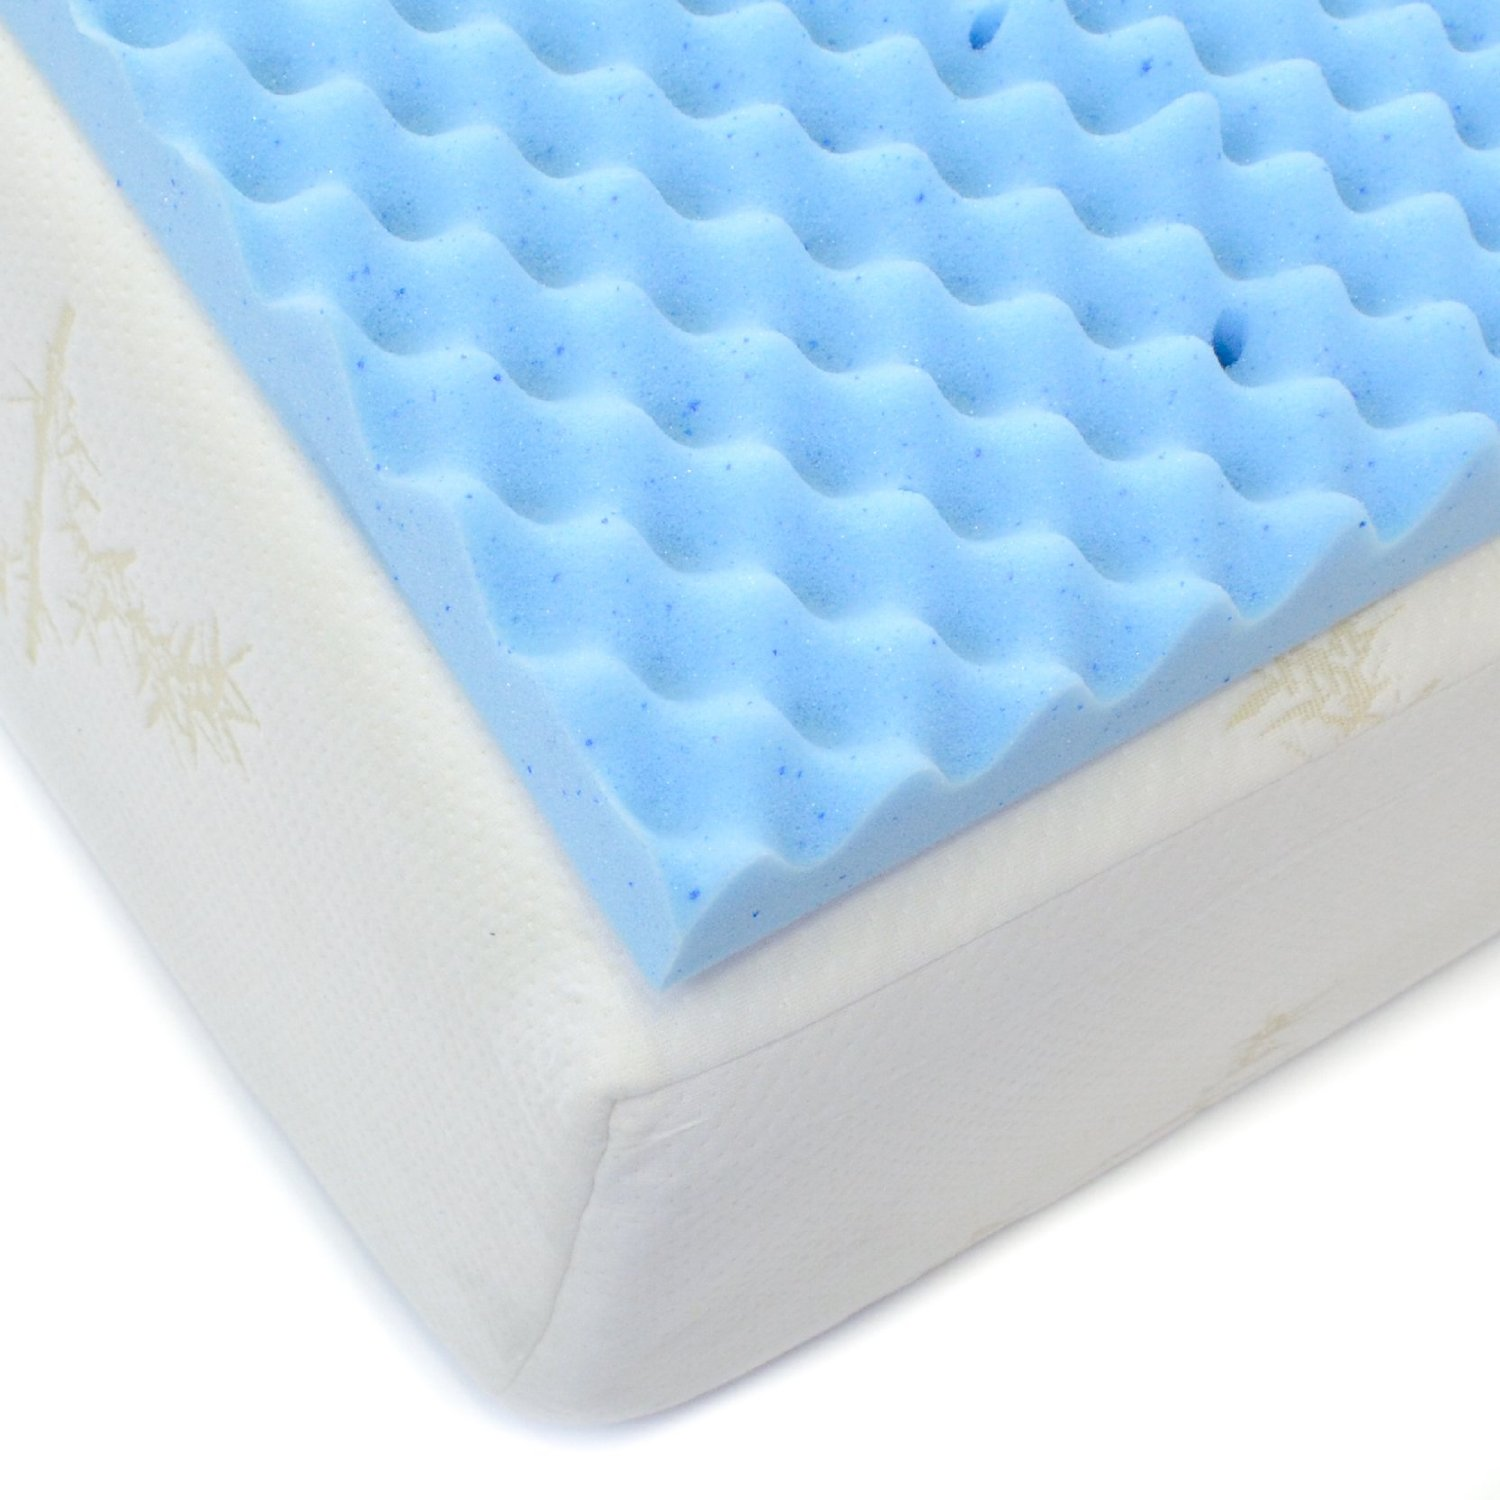 Egg Crate Gel Infused Memory Foam Mattress Topper Full Milliard